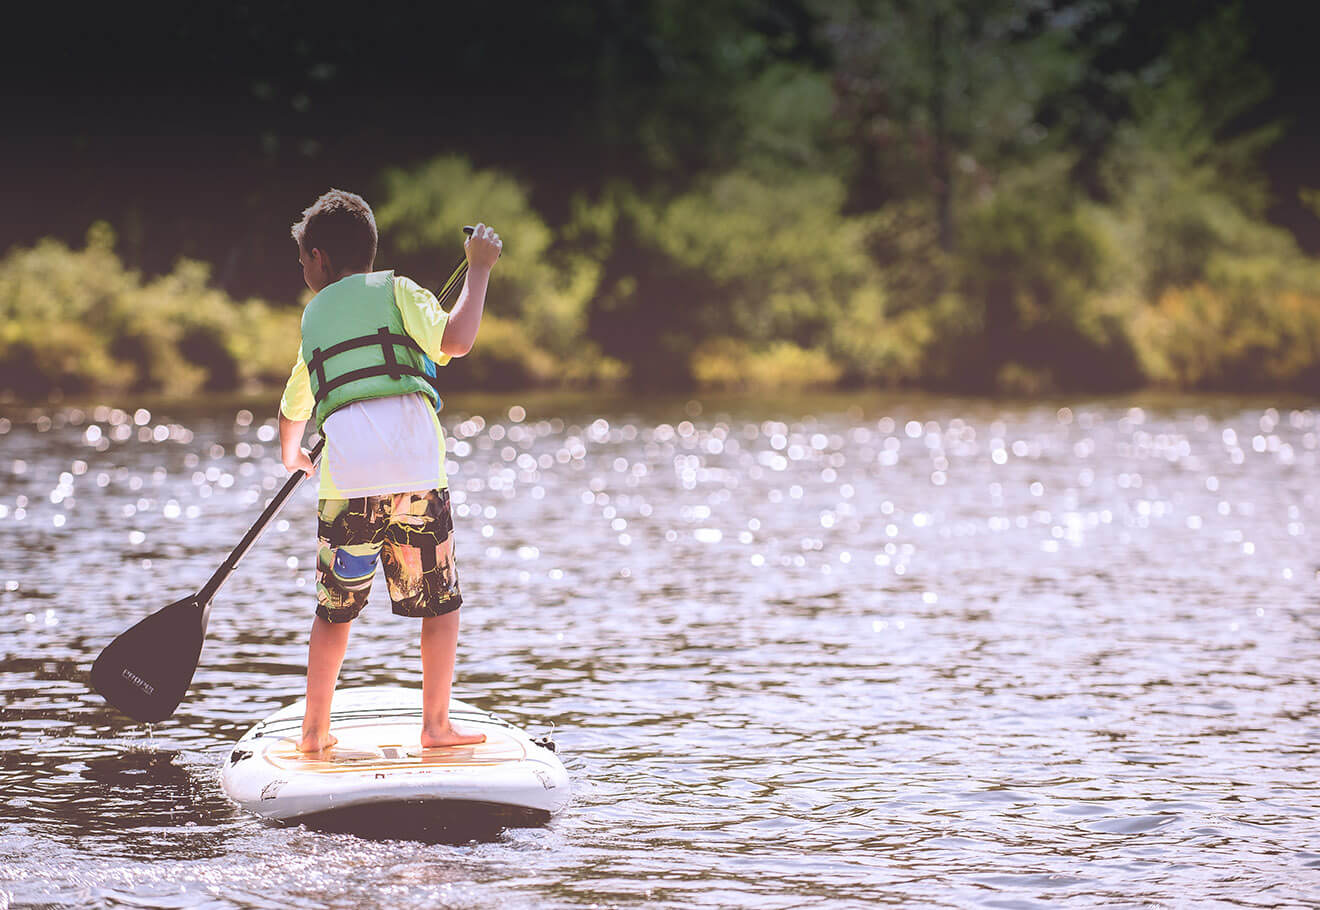 Child stand up paddleboarding